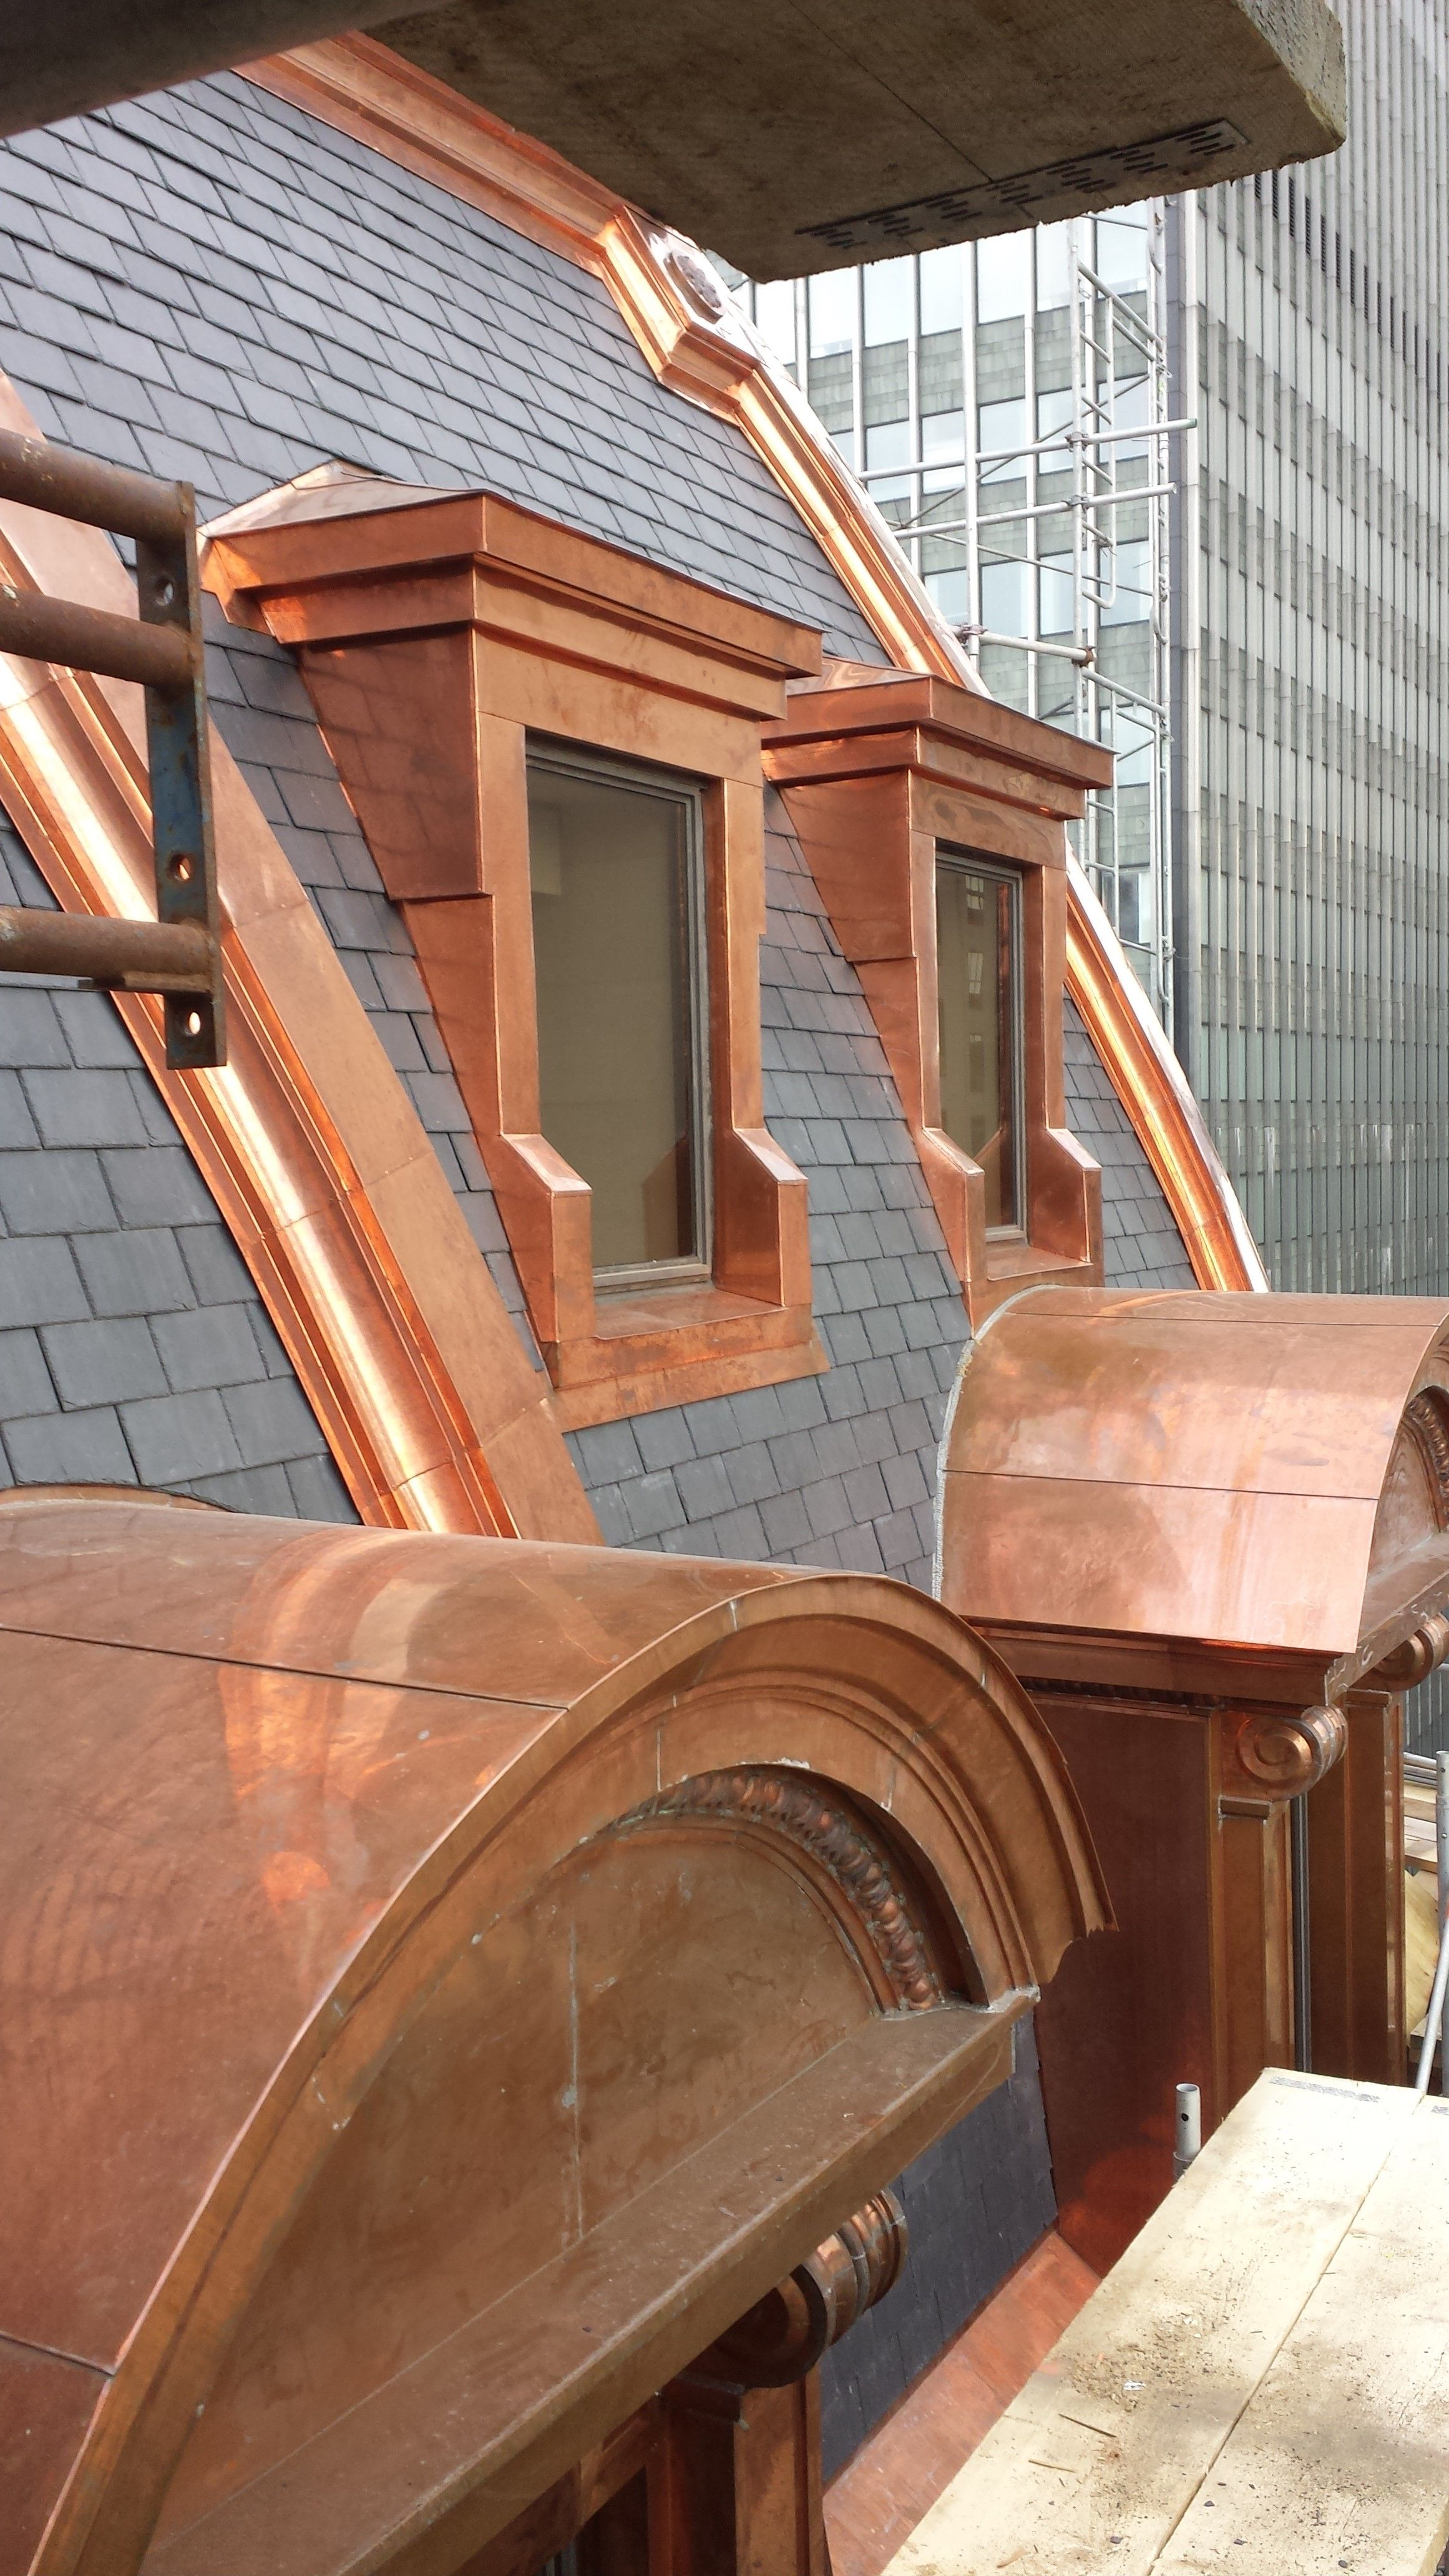 North Country Unfading Black Slate Roof On Le Windsor Hotel In Montreal Opened In 1875 Metal Roof Houses Roof Design Window Architecture